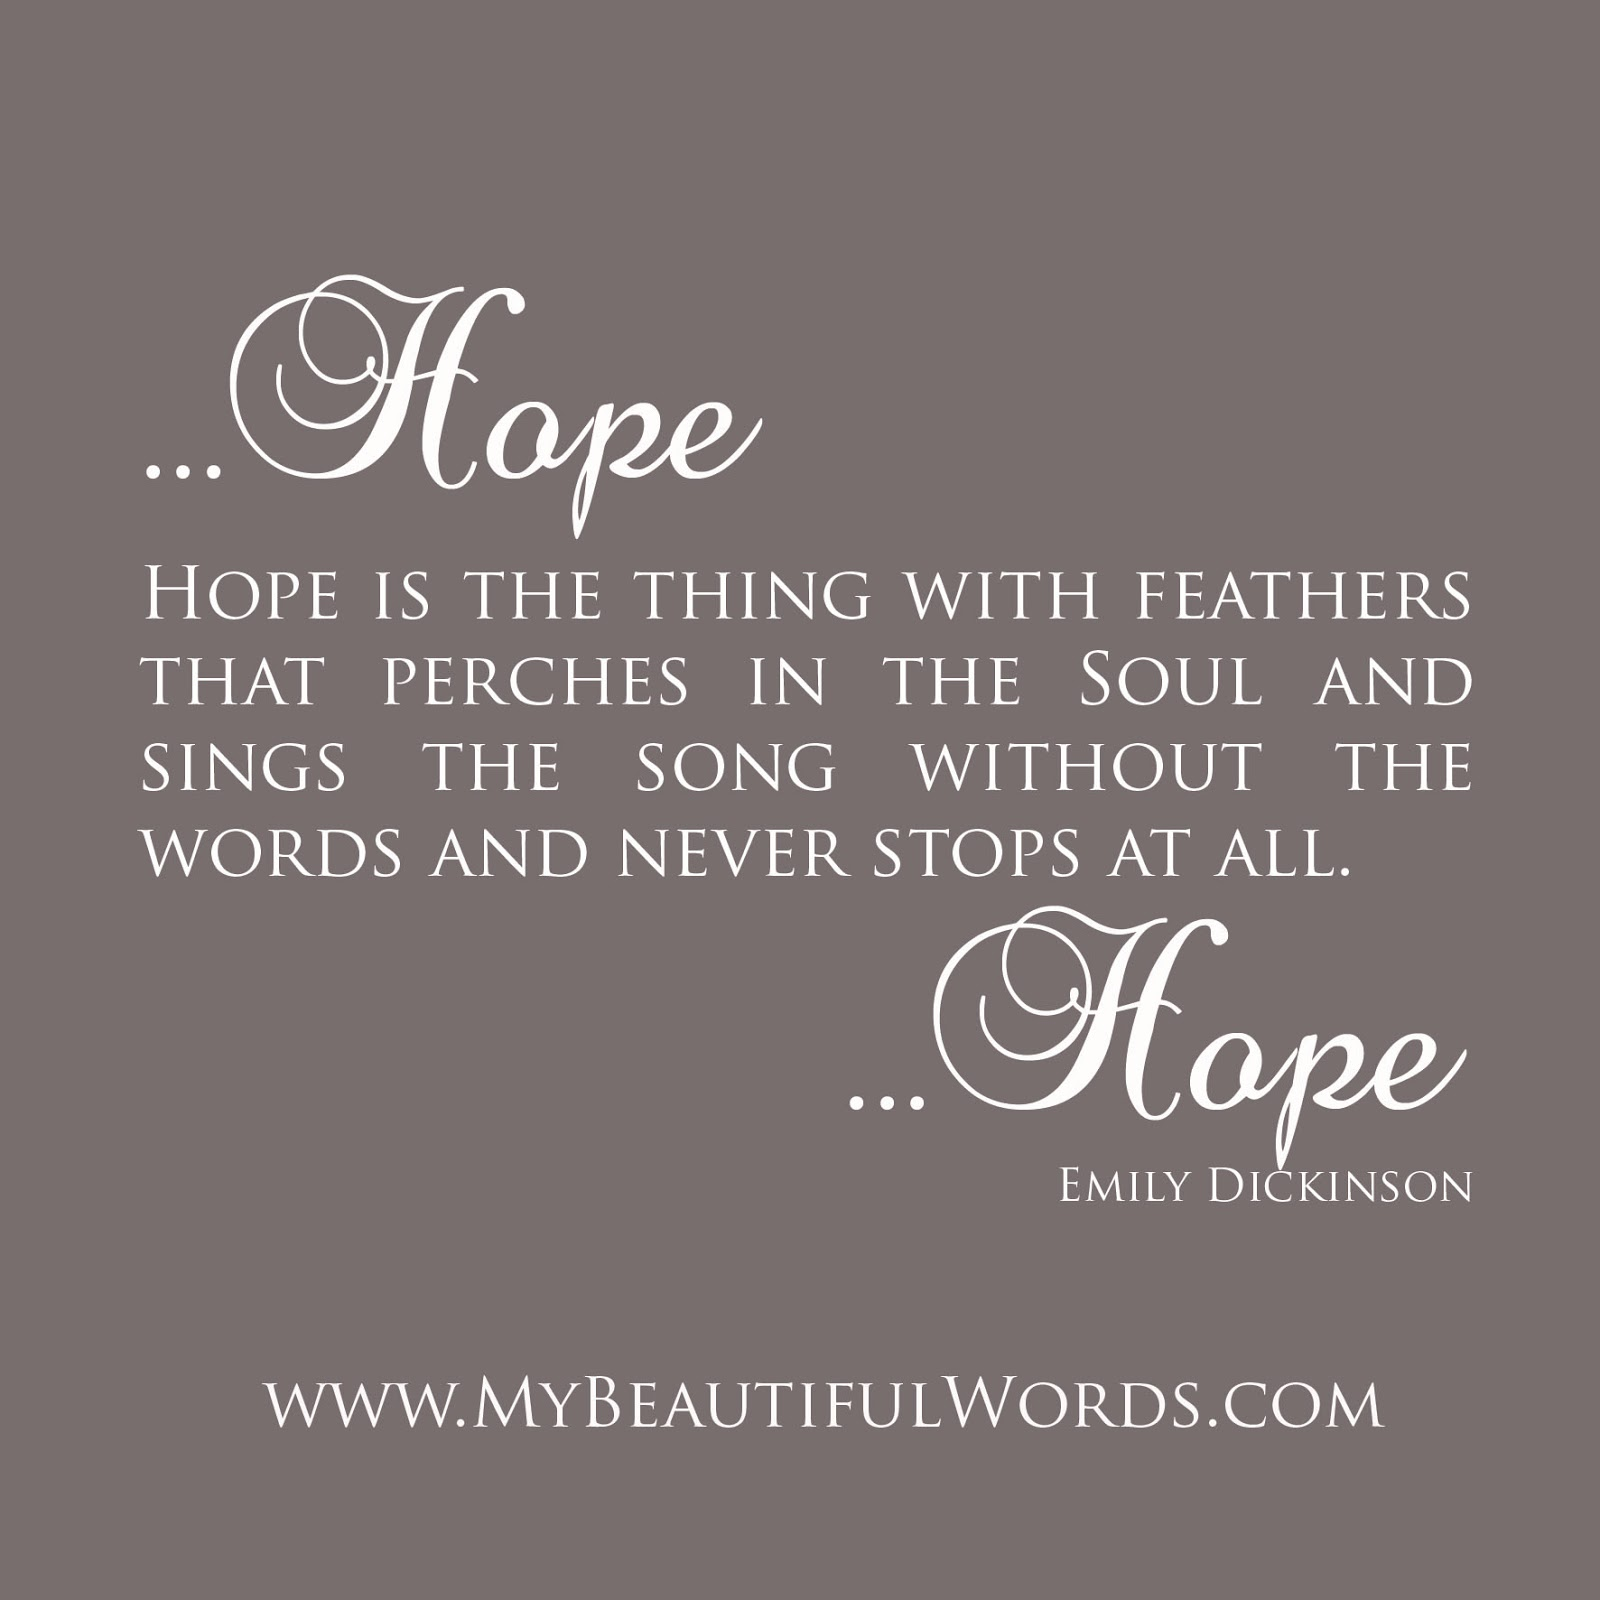 Inspirational Quotes About Failure: My Beautiful Words.: Hope